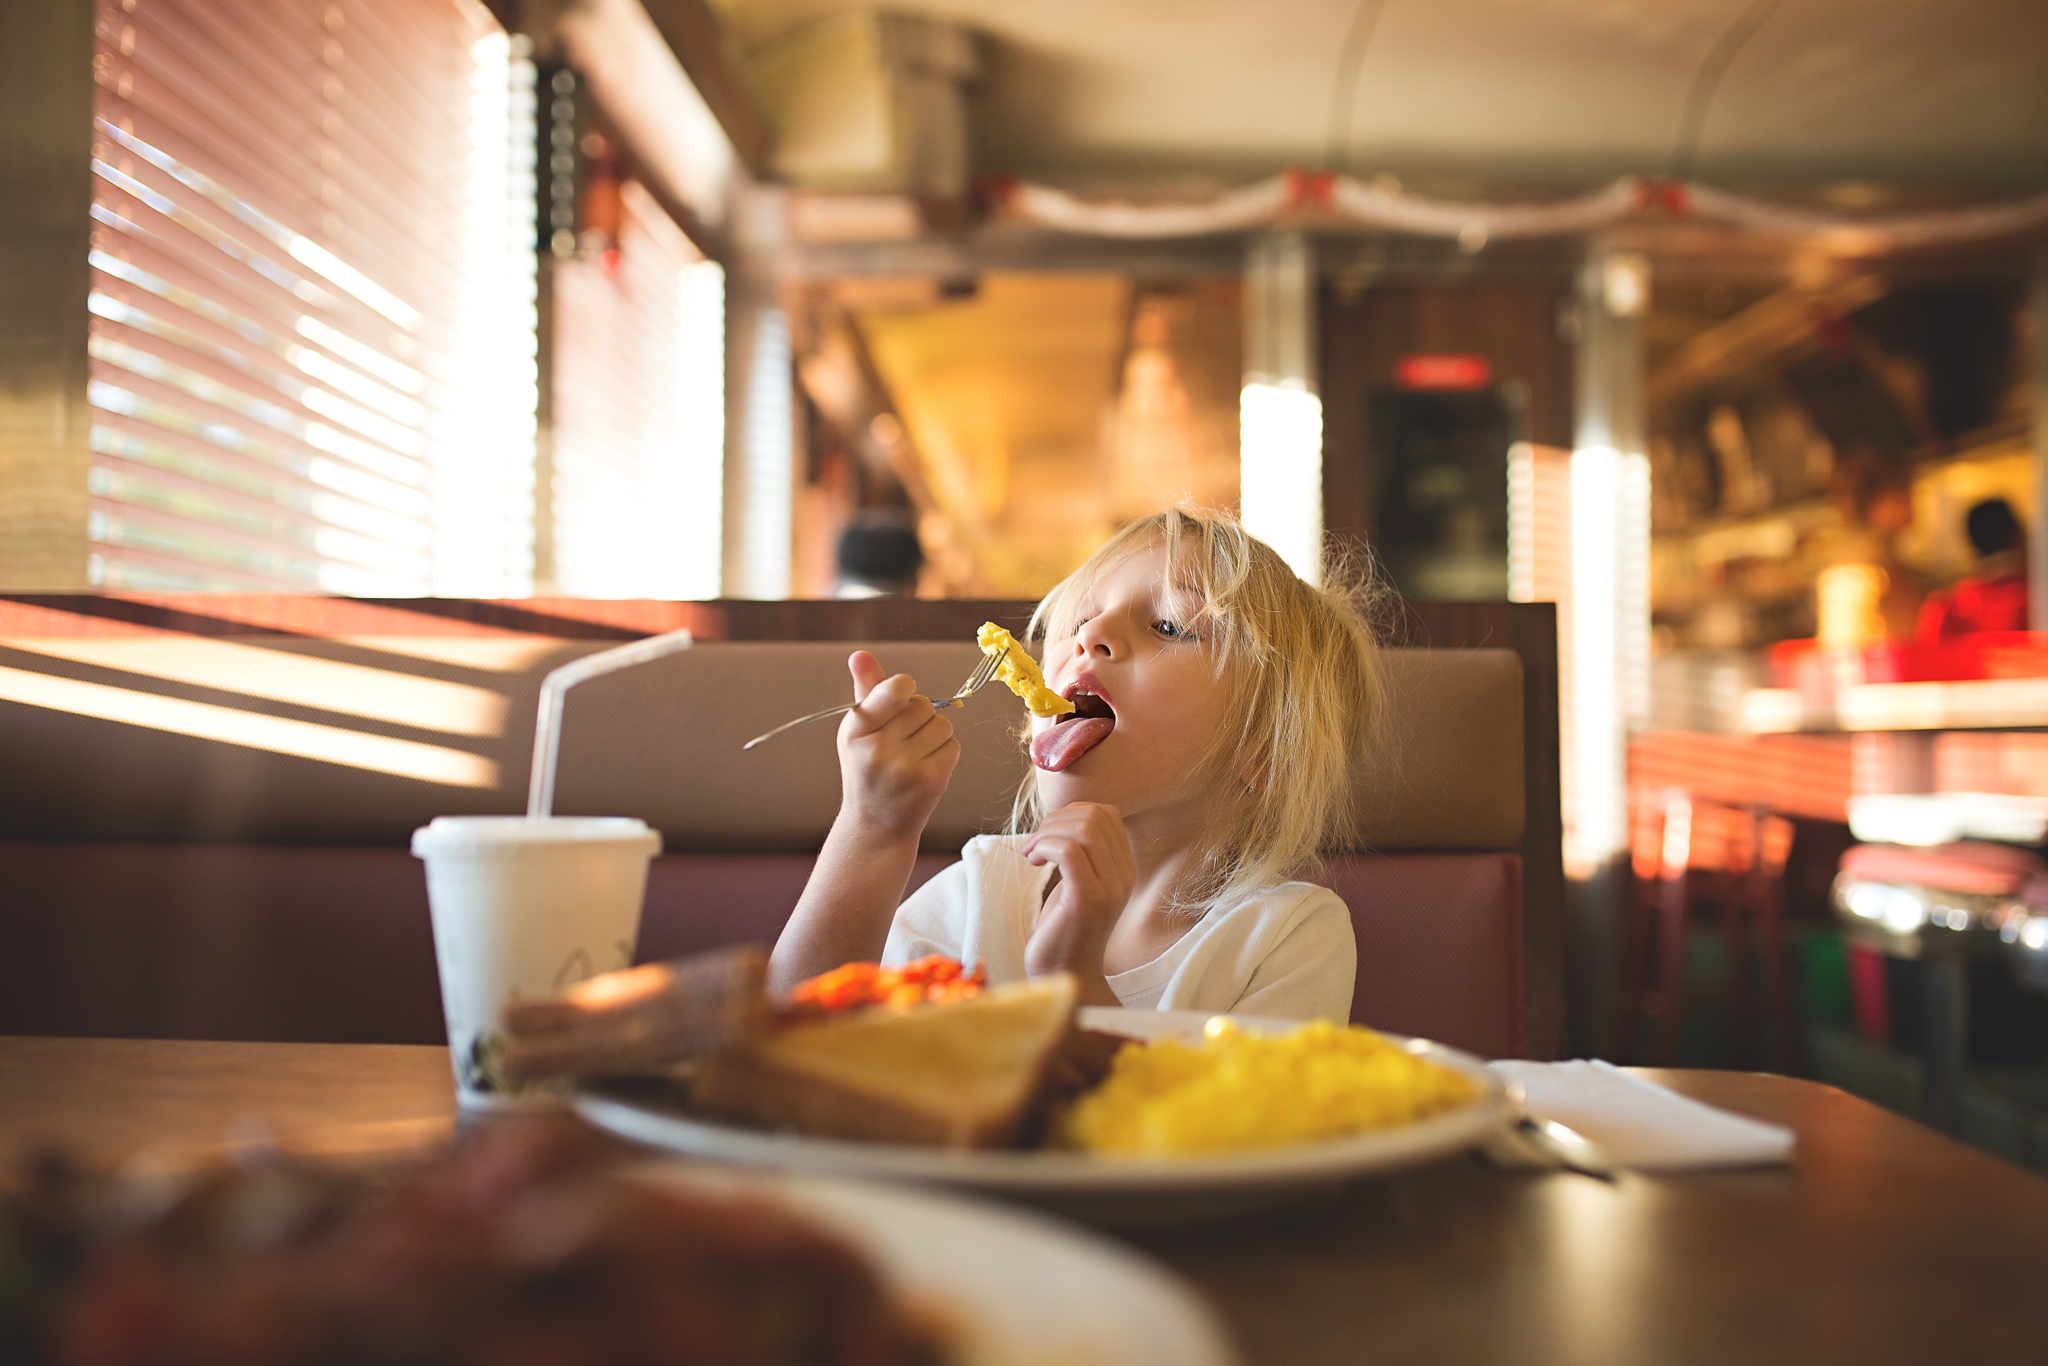 Hello-Olivia-Photography-eating-cook-room-coram-new-york-breakfast-diner-eggs-food-eat